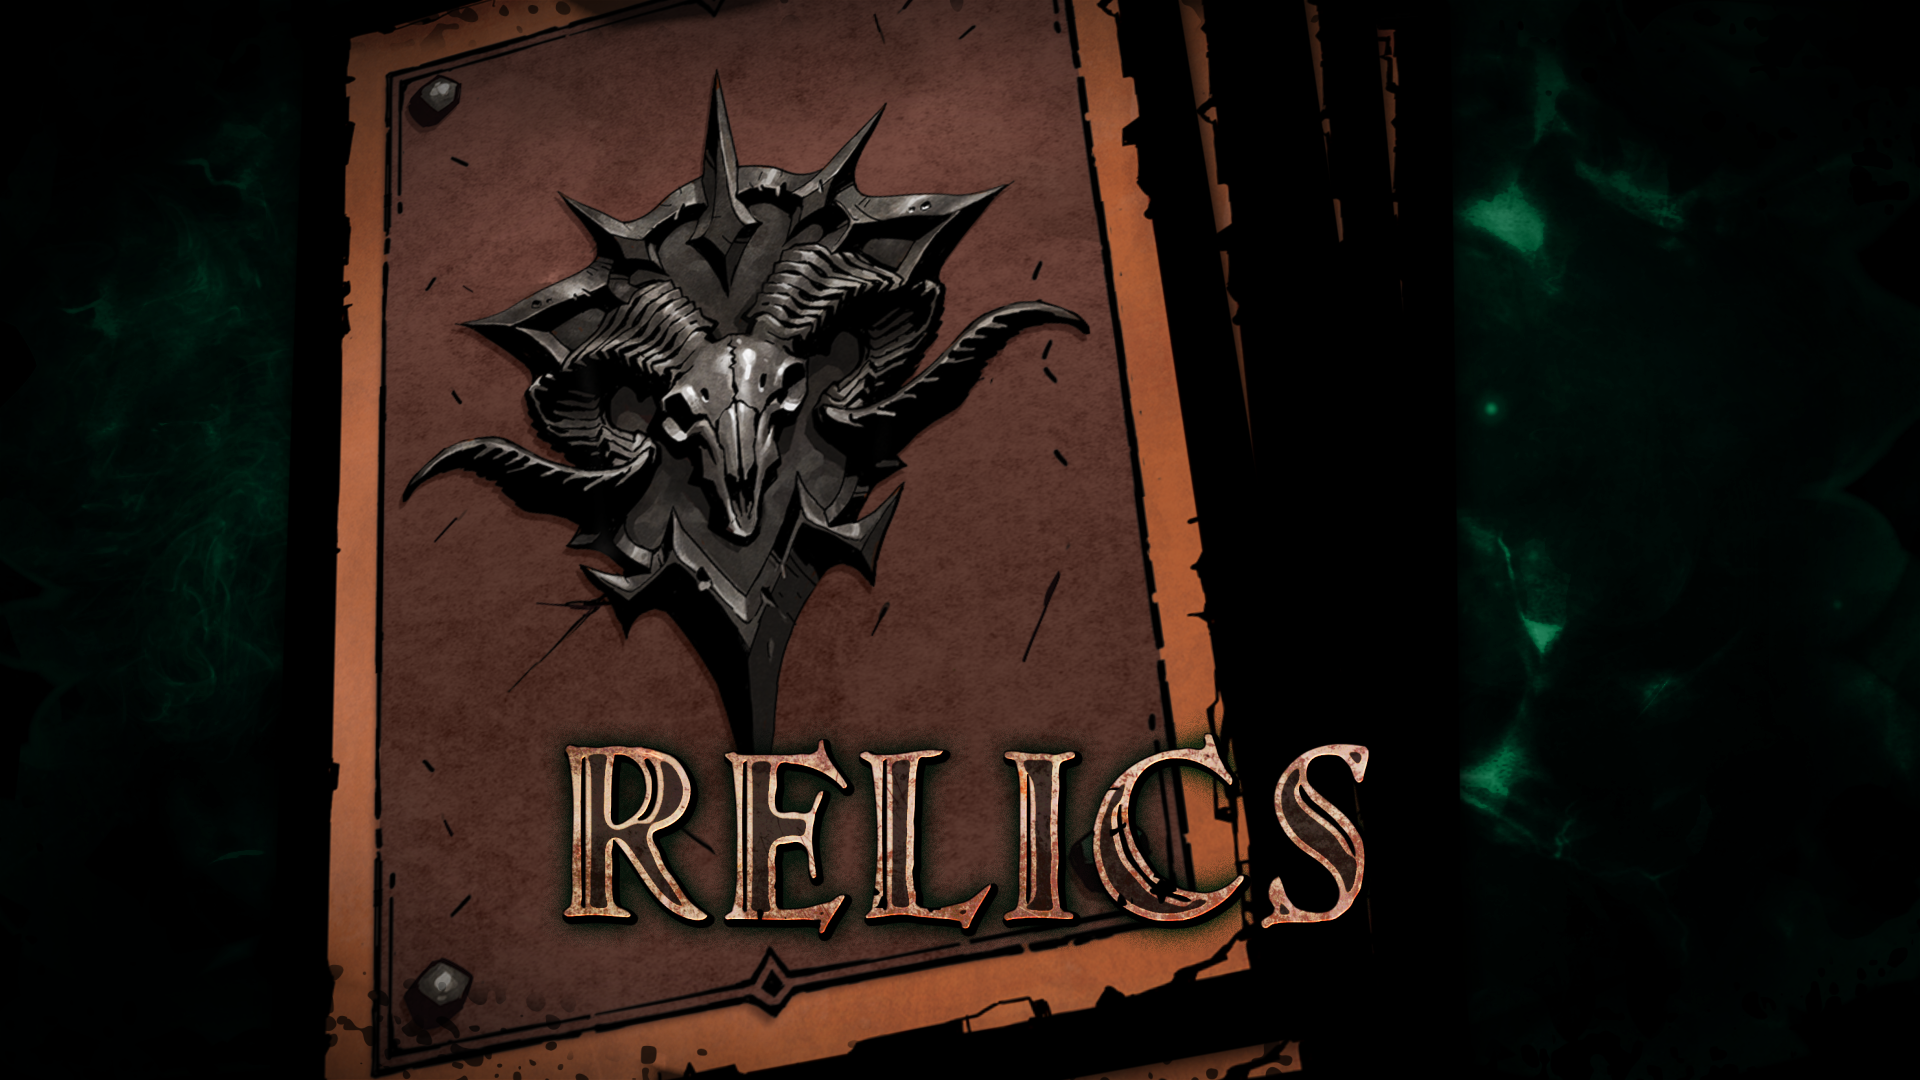 RELIC AND ARTIFACT FAQ - Q: When can I play Artifacts and Relics? What's the order of operations when playing against another card?A: Cards will say when they are able to be played (Opponent's Turn, Any Turn, etc.) and can be used at any point during the turn in which they can be used, but some cards are used in response to other cards being played. When an opponent plays their card against the player, the player can play another card as a response. i.e. An opponent plays a card that removes 1 health, but the player has a card that instantly heals for 1 health that they play immediately after that card. The cards are then resolved in the reverse order of them being played, so the healing card would be counted, then the damage card would be applied.